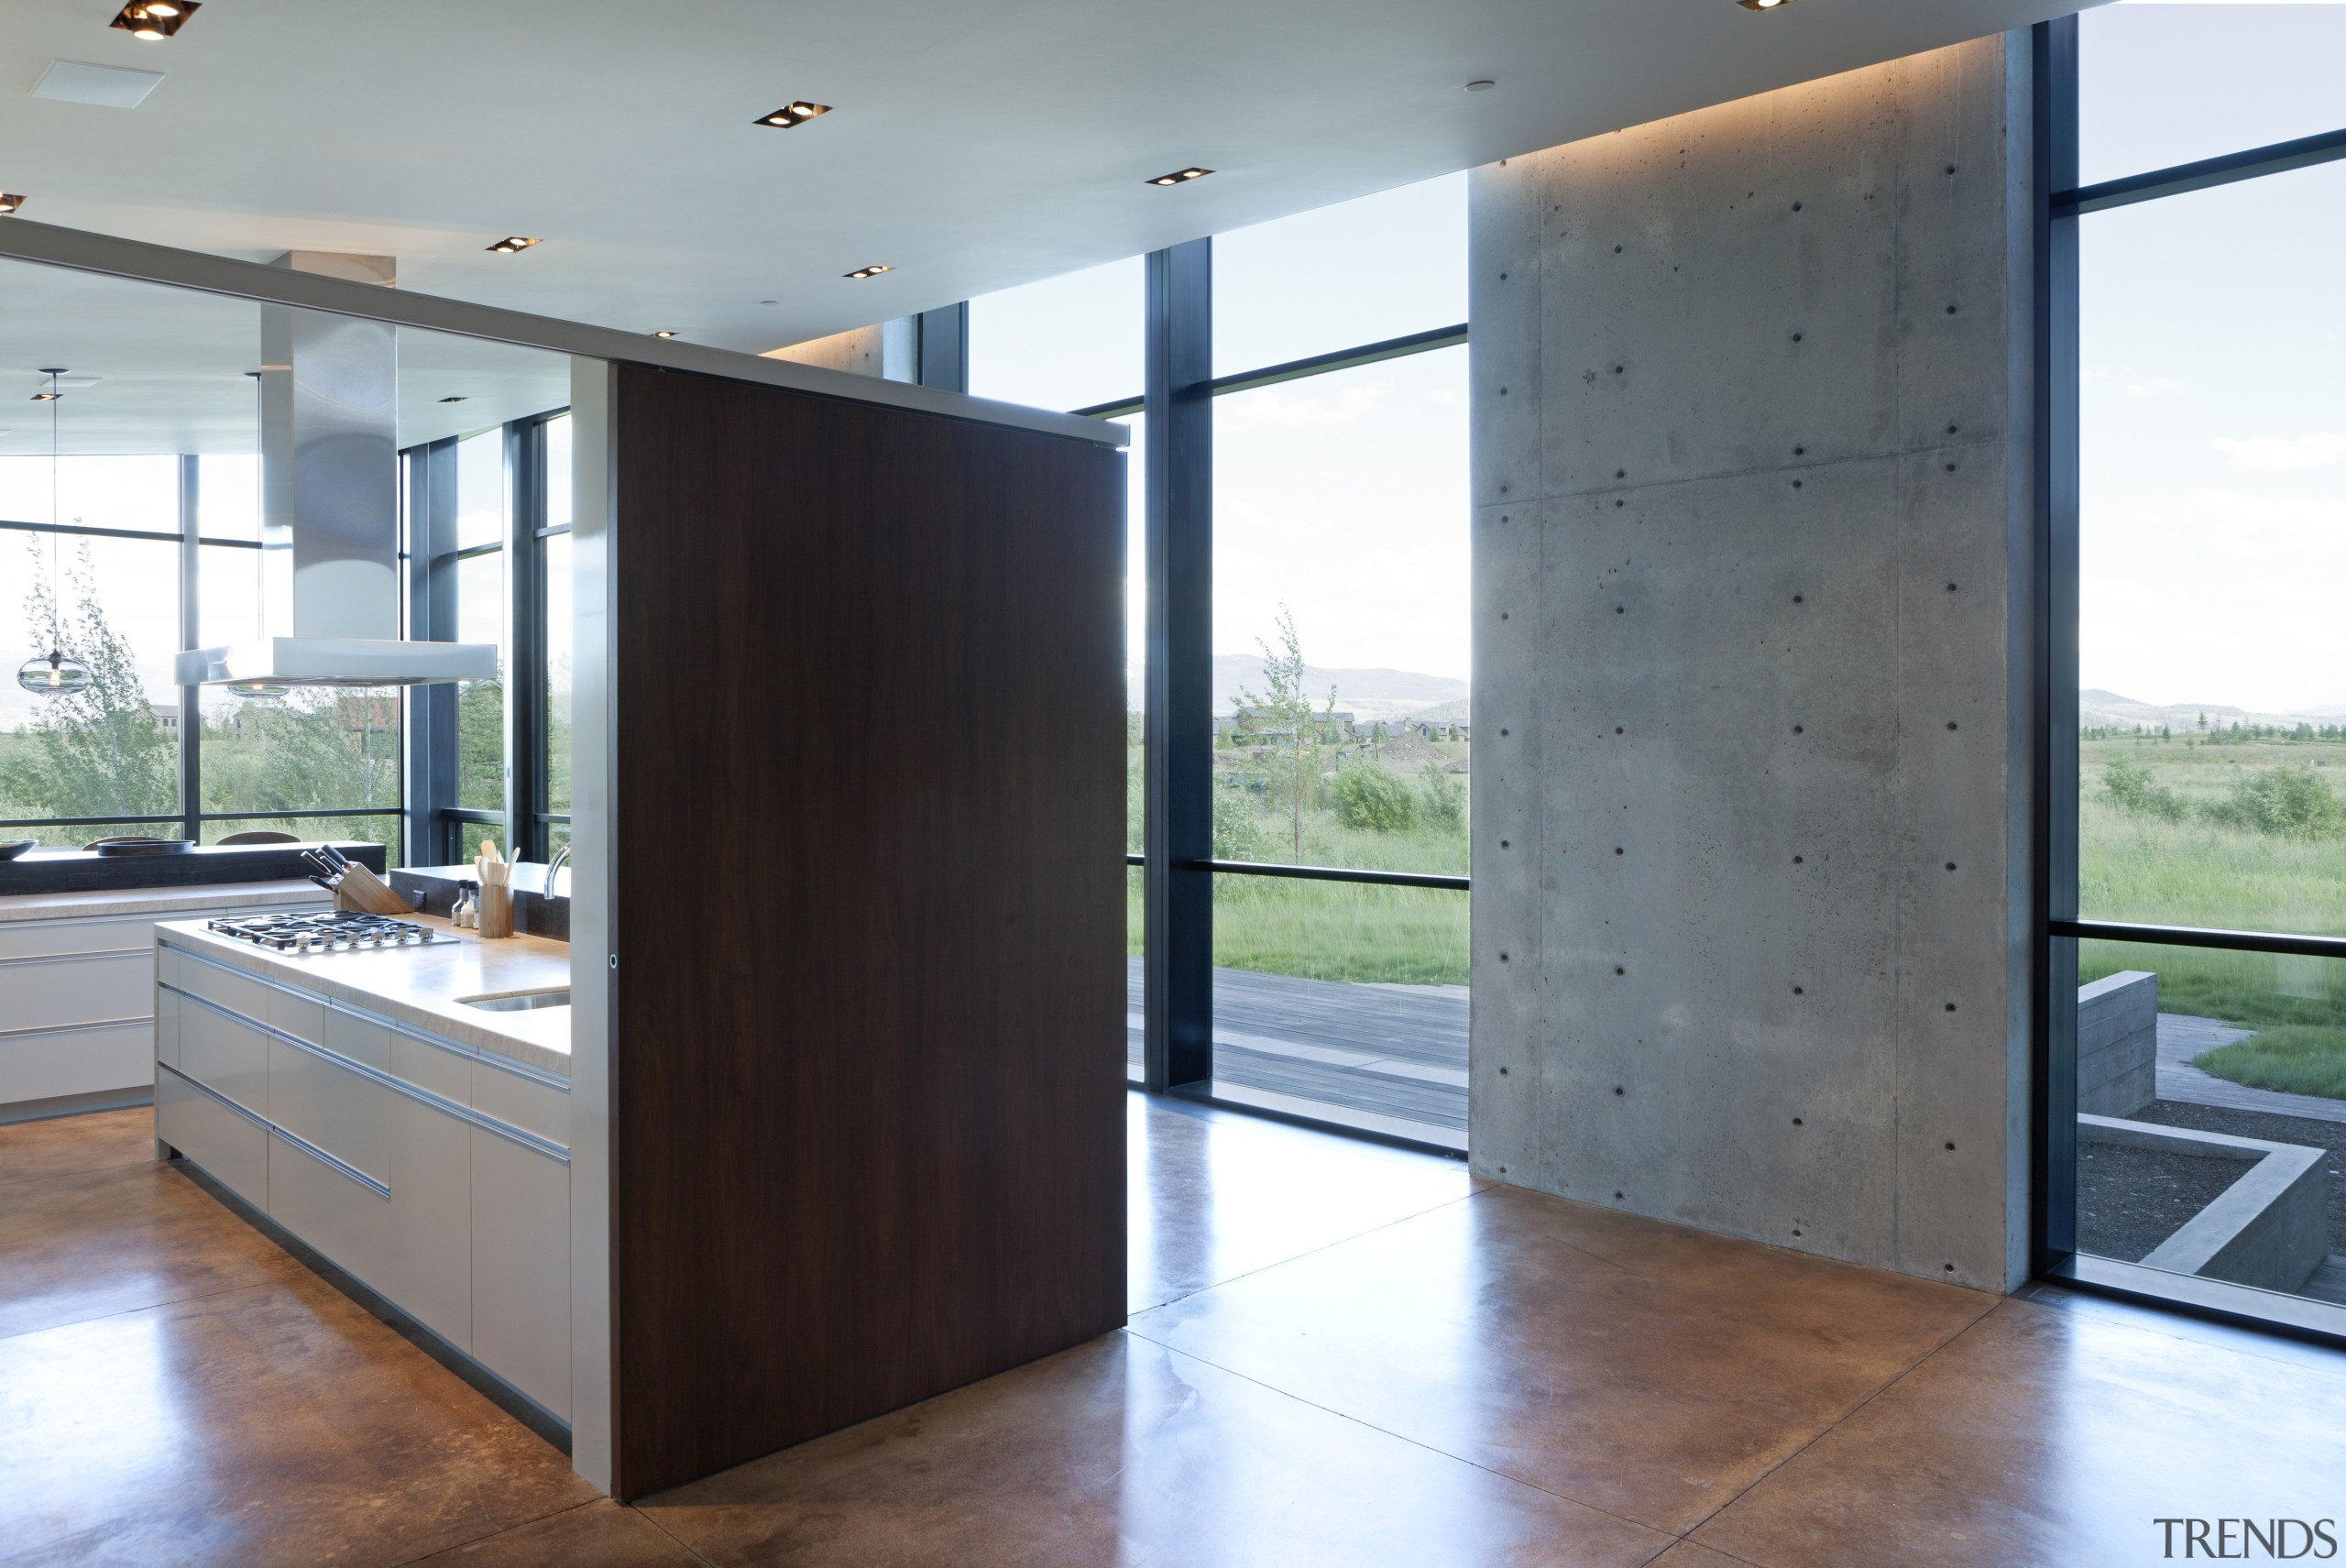 High ceilings in two corners of the home architecture, floor, house, interior design, white, gray